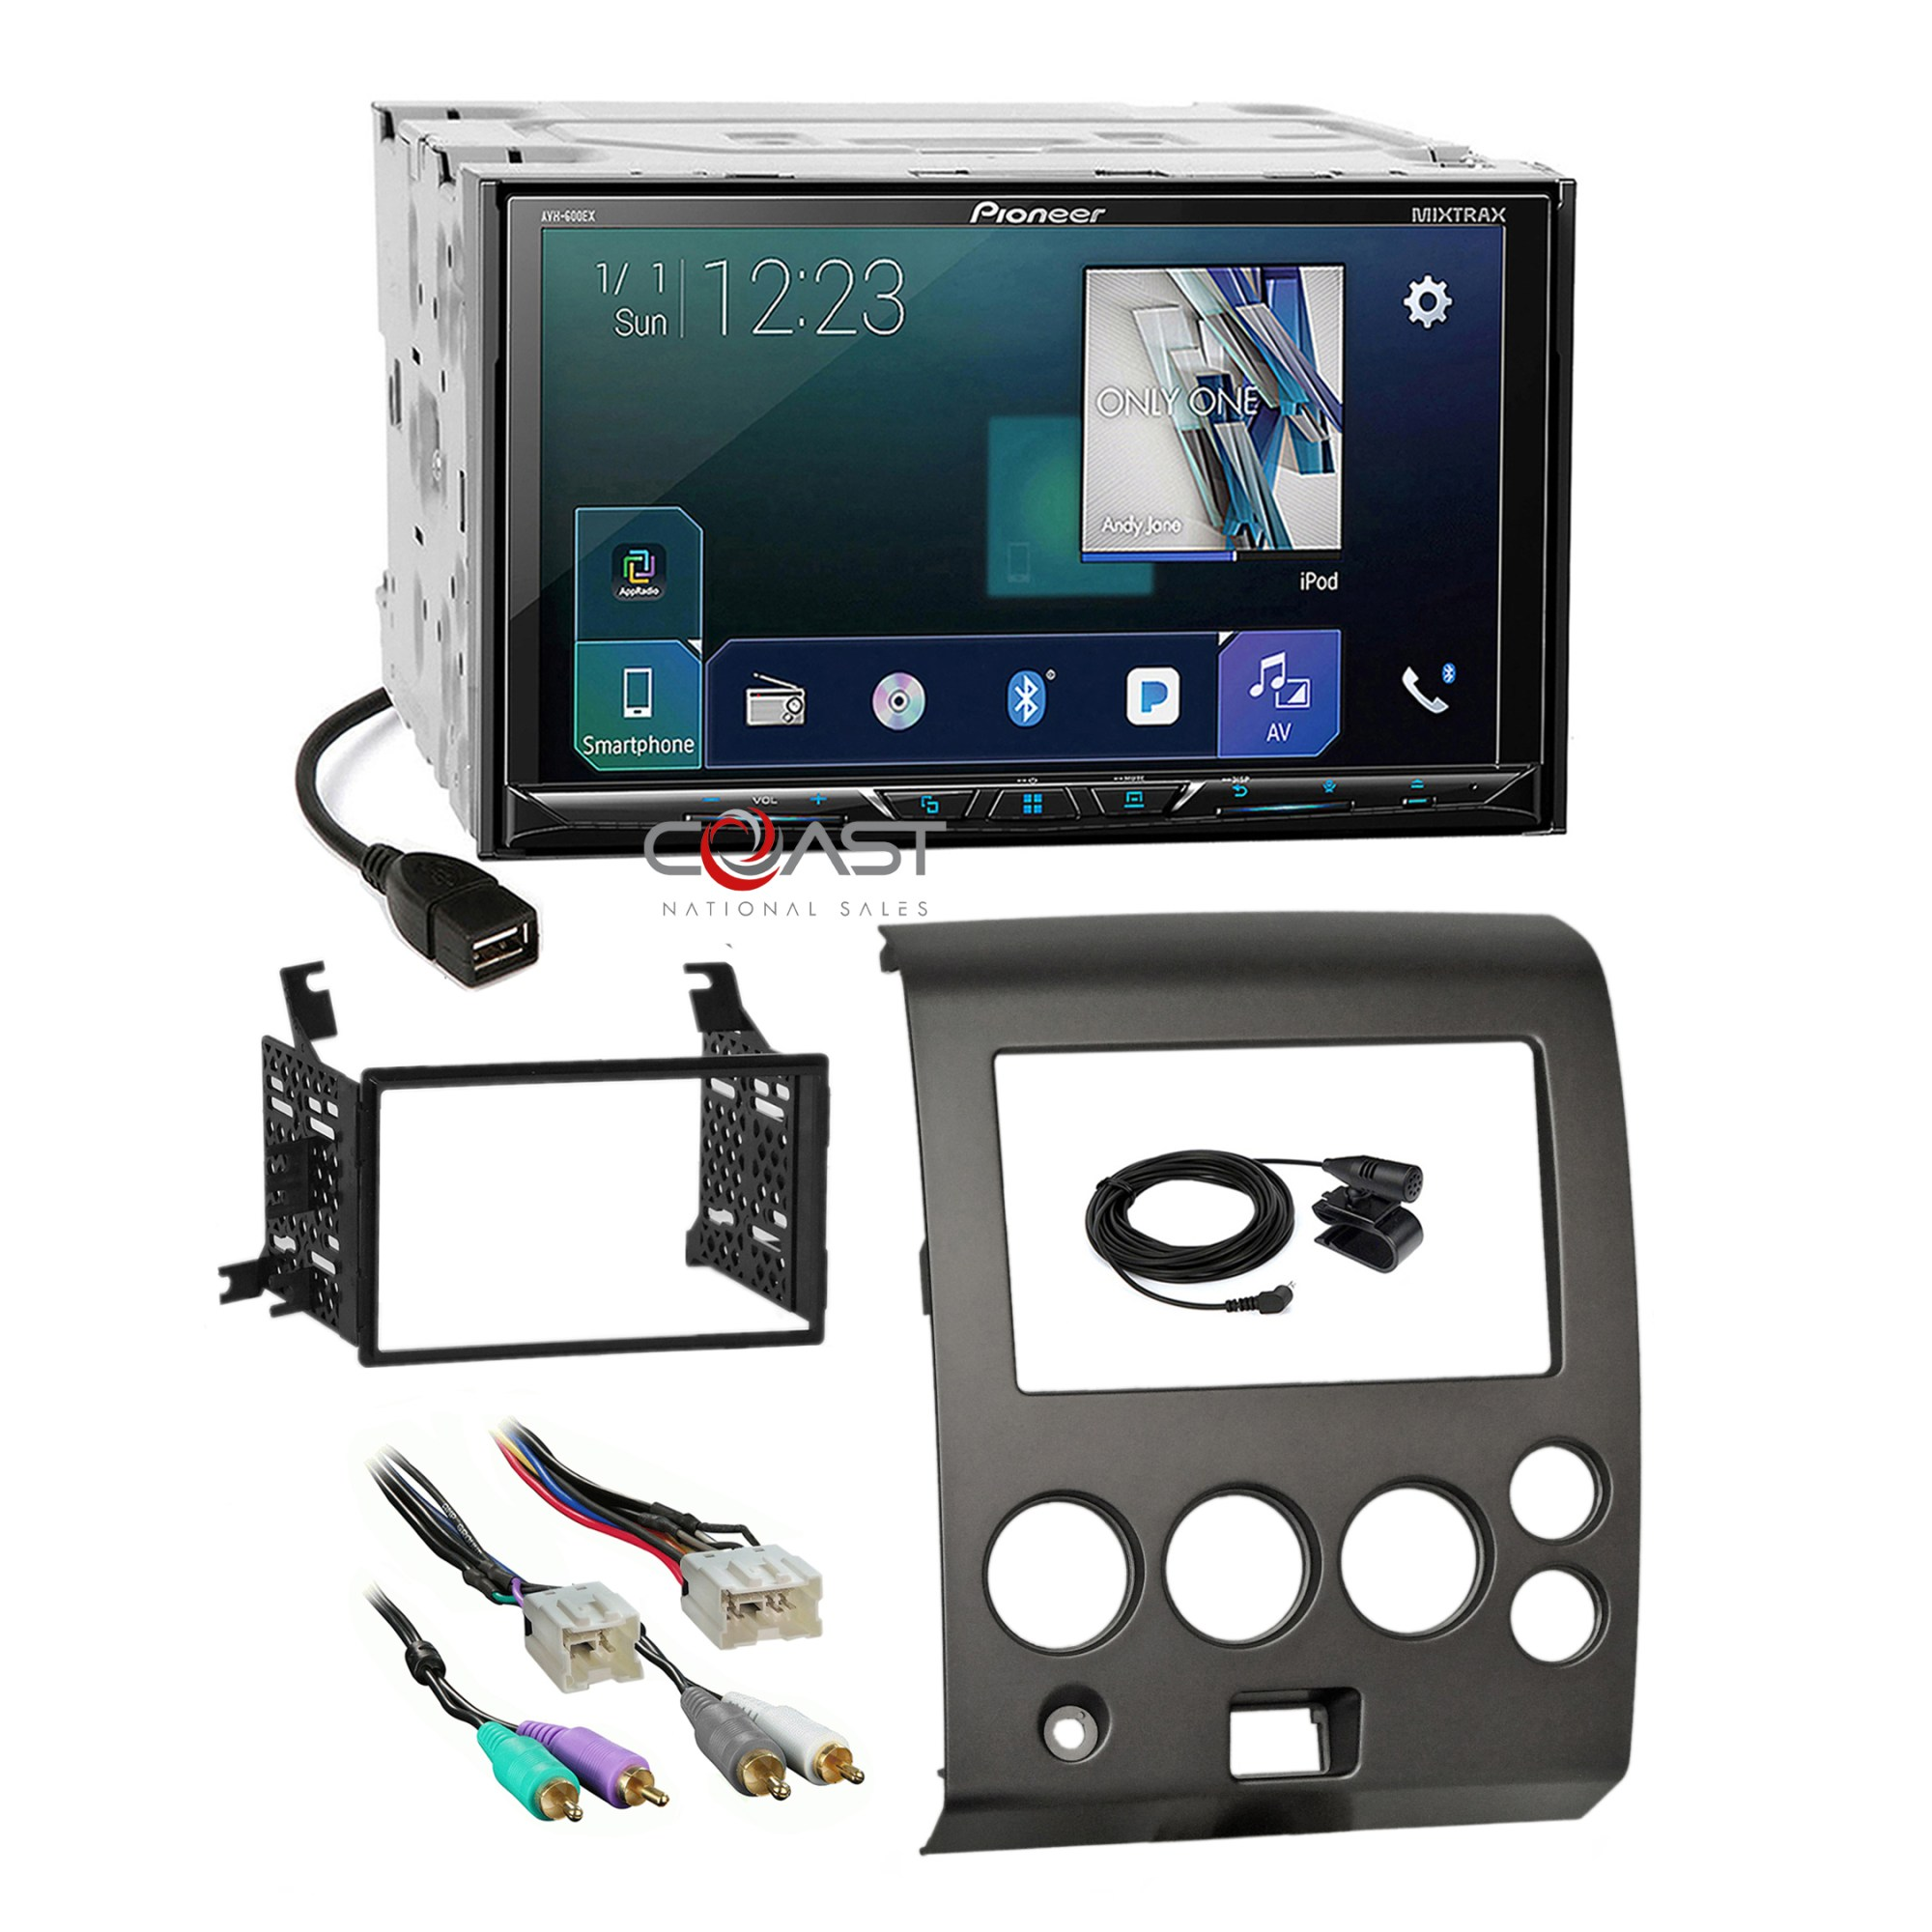 hight resolution of details about pioneer 2018 sirius gps ready radio dash kit harness for 04 nissan armada titan